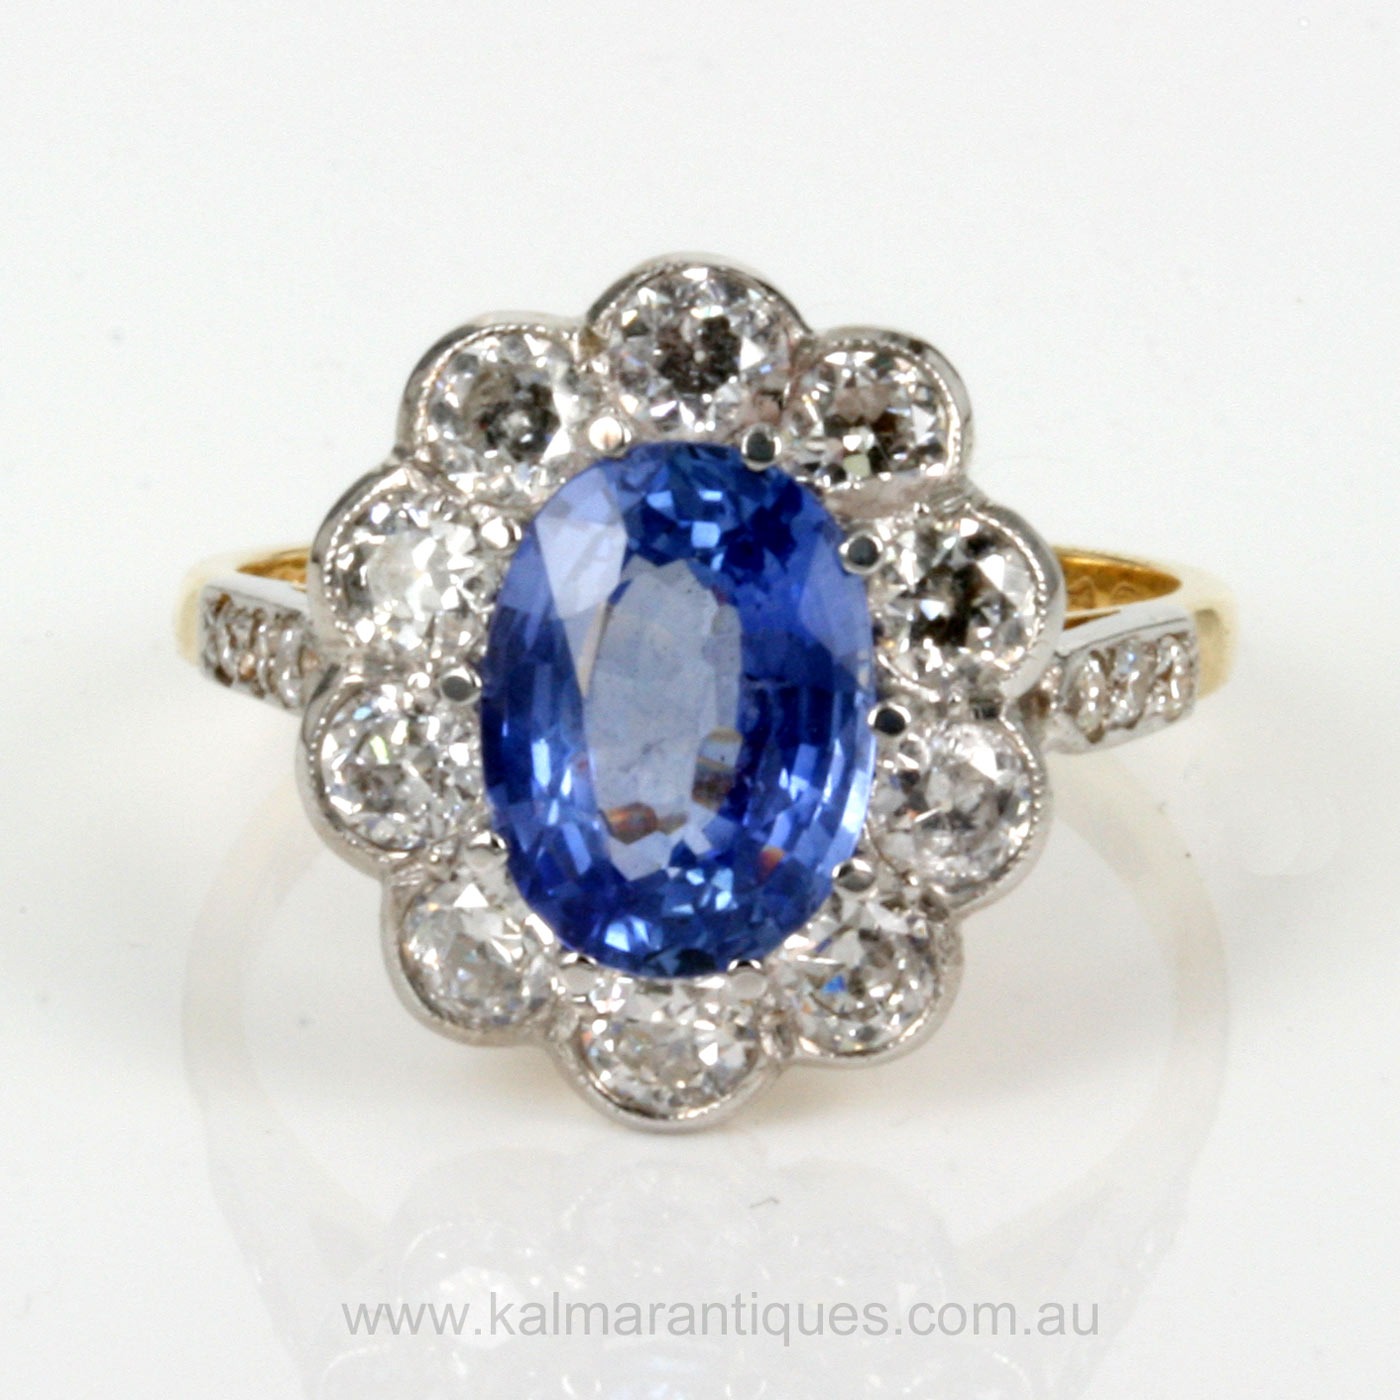 Cluster Bands: Buy 2.45ct Sapphire & Diamond Cluster Ring In 18ct Gold